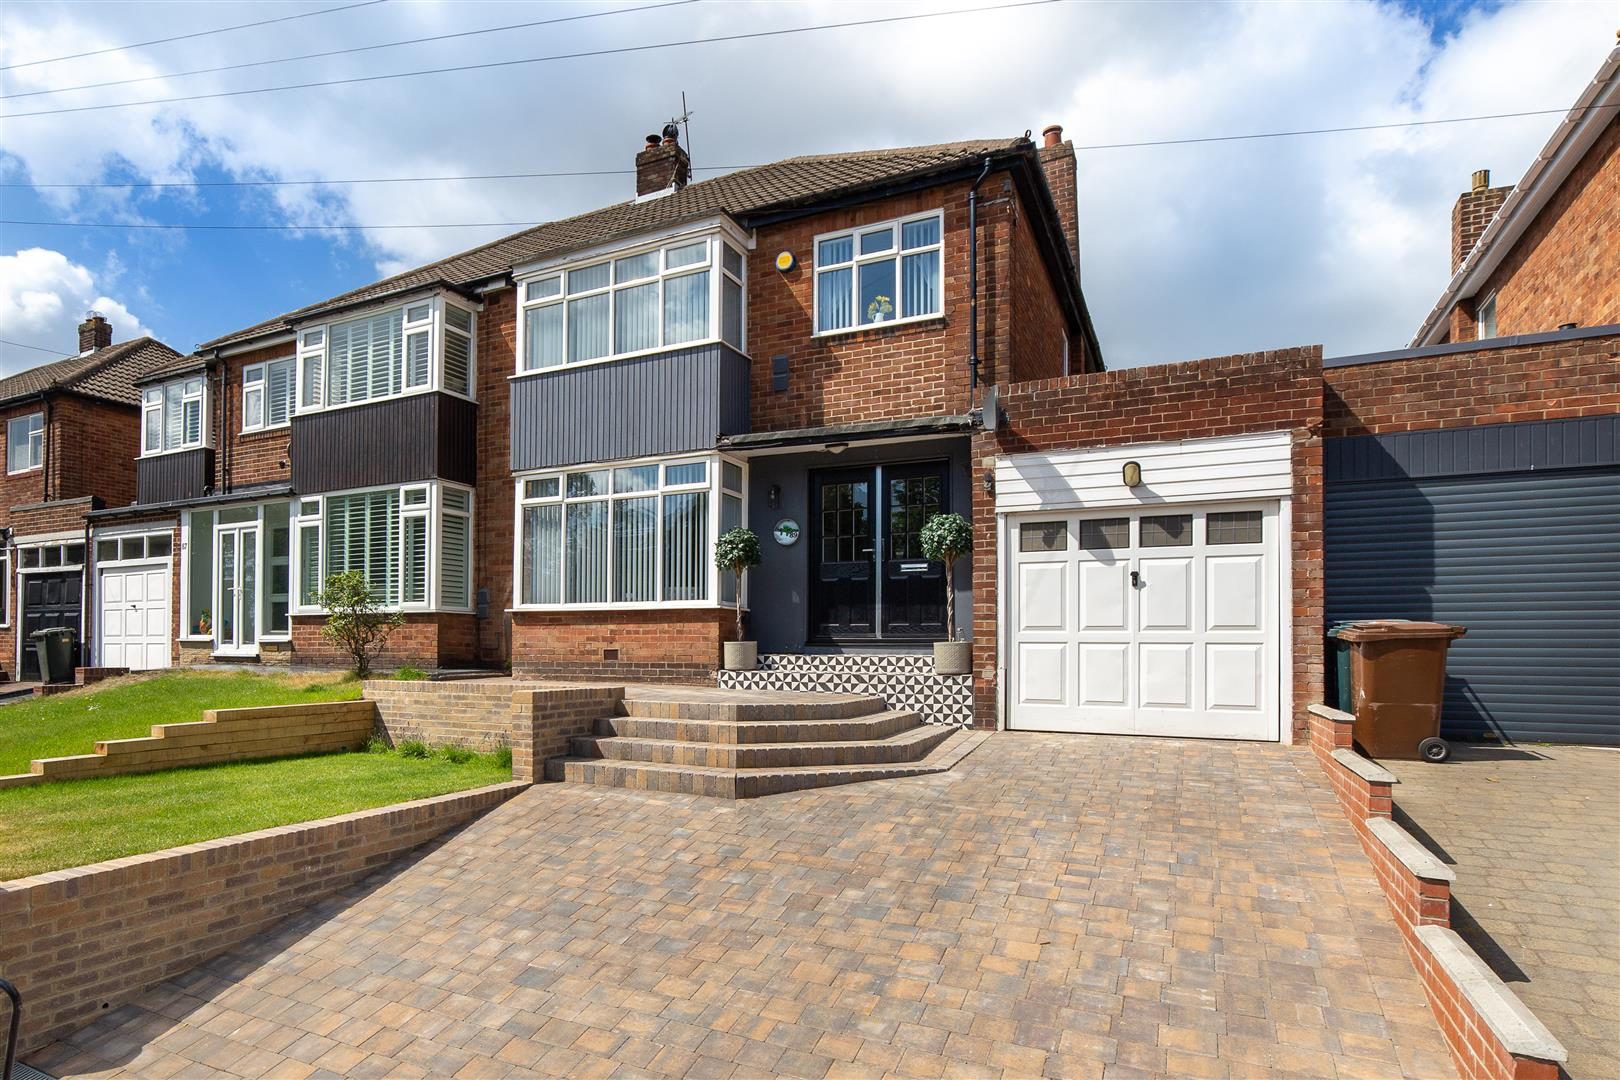 3 bed semi-detached house for sale in Great North Road, Newcastle Upon Tyne, NE3